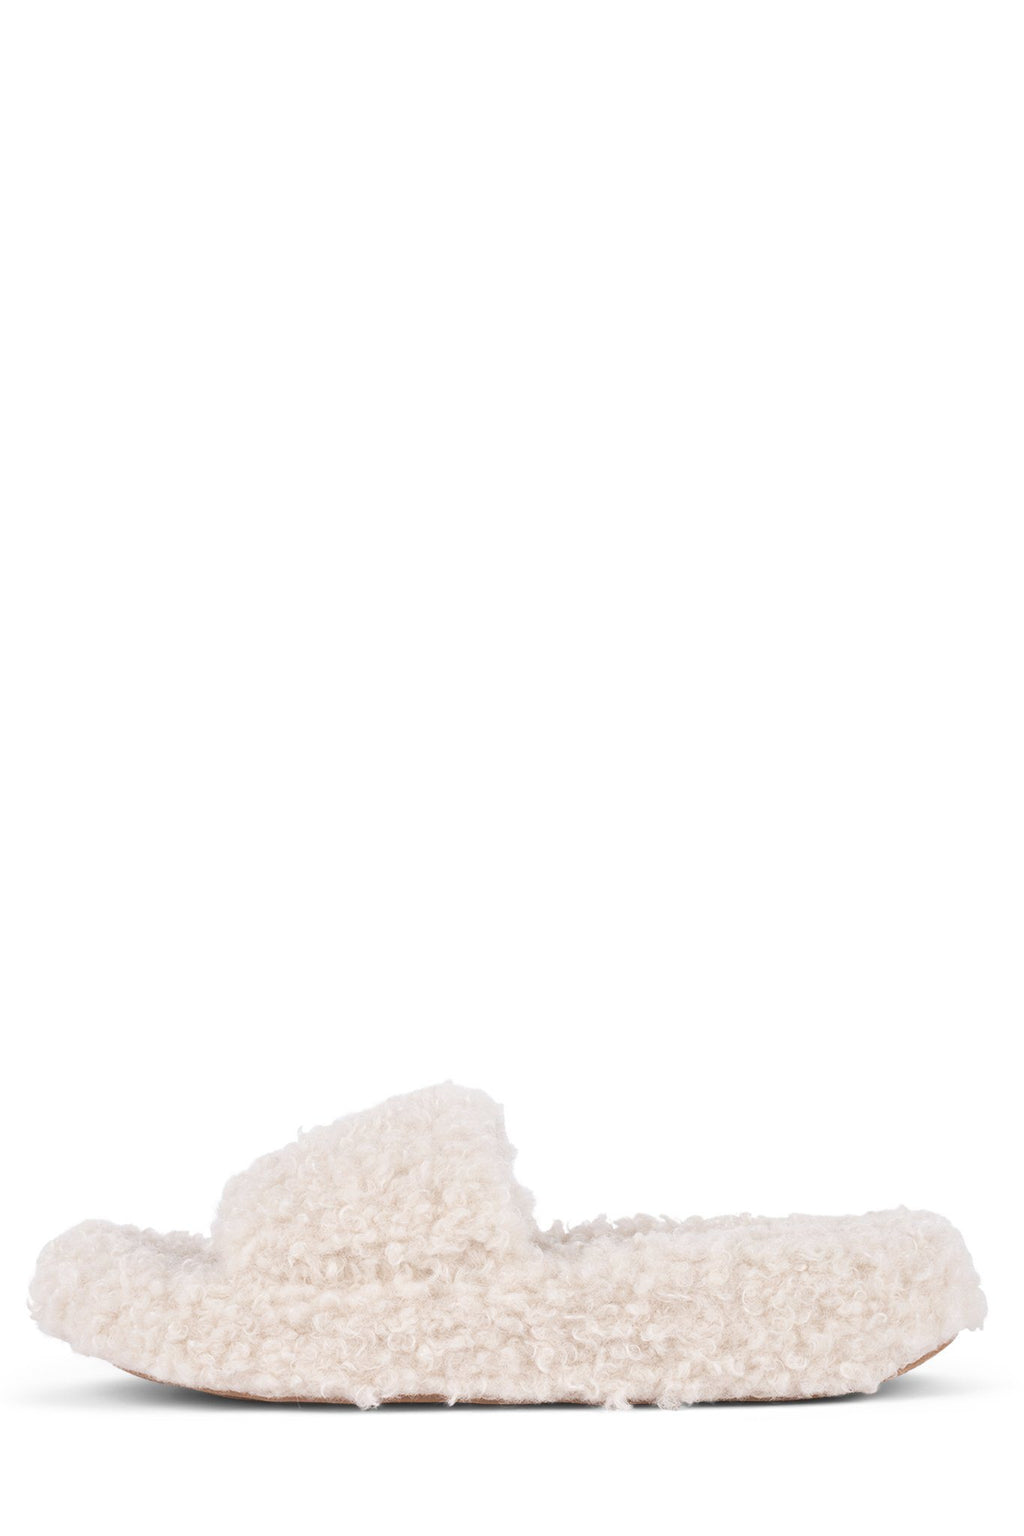 GOODNIGHT Slippers Jeffrey Campbell Ivory 6